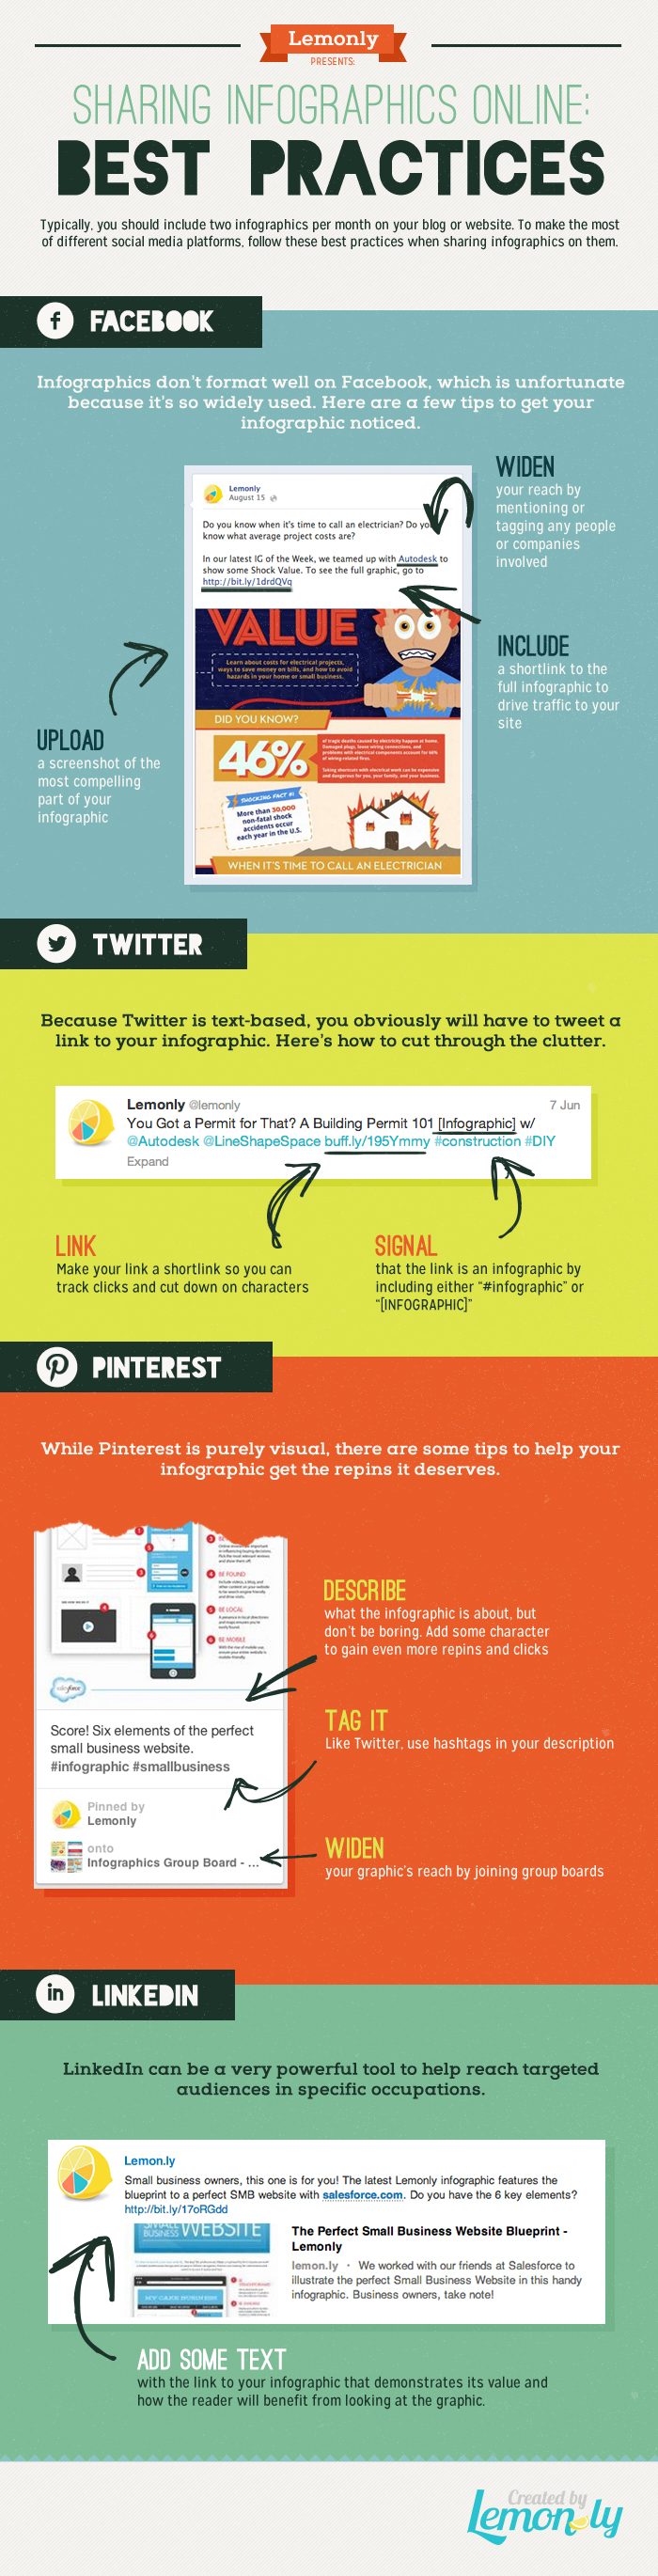 Sharing-infographic-online-best-practices-1